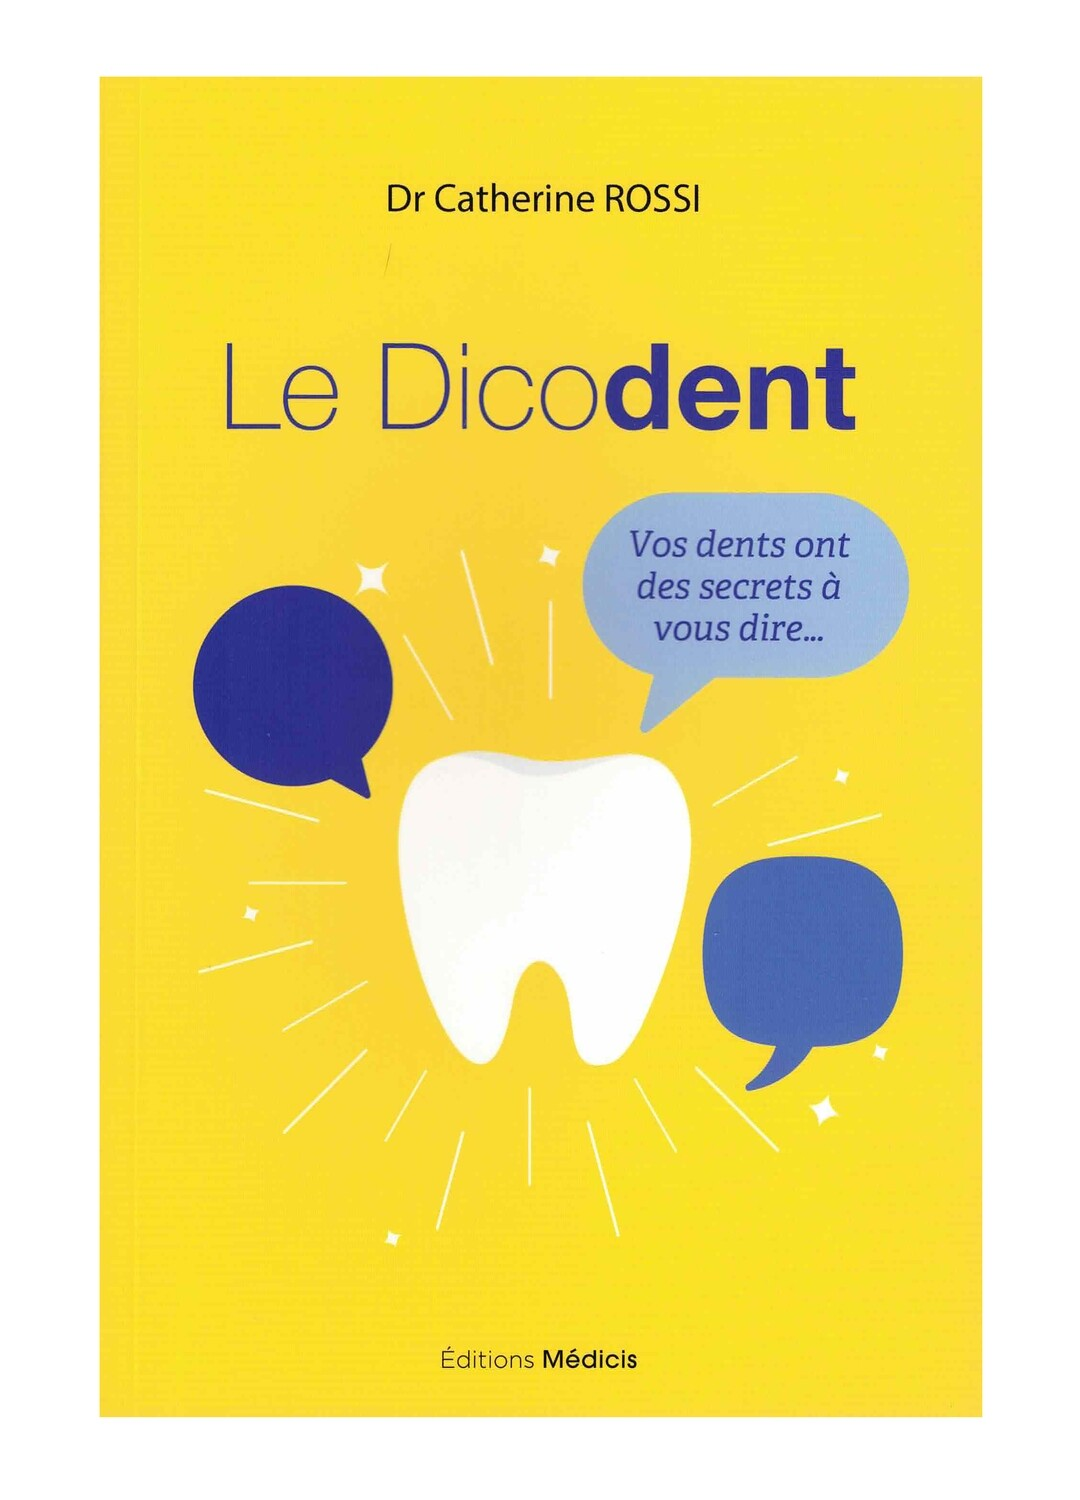 Le Dicodent